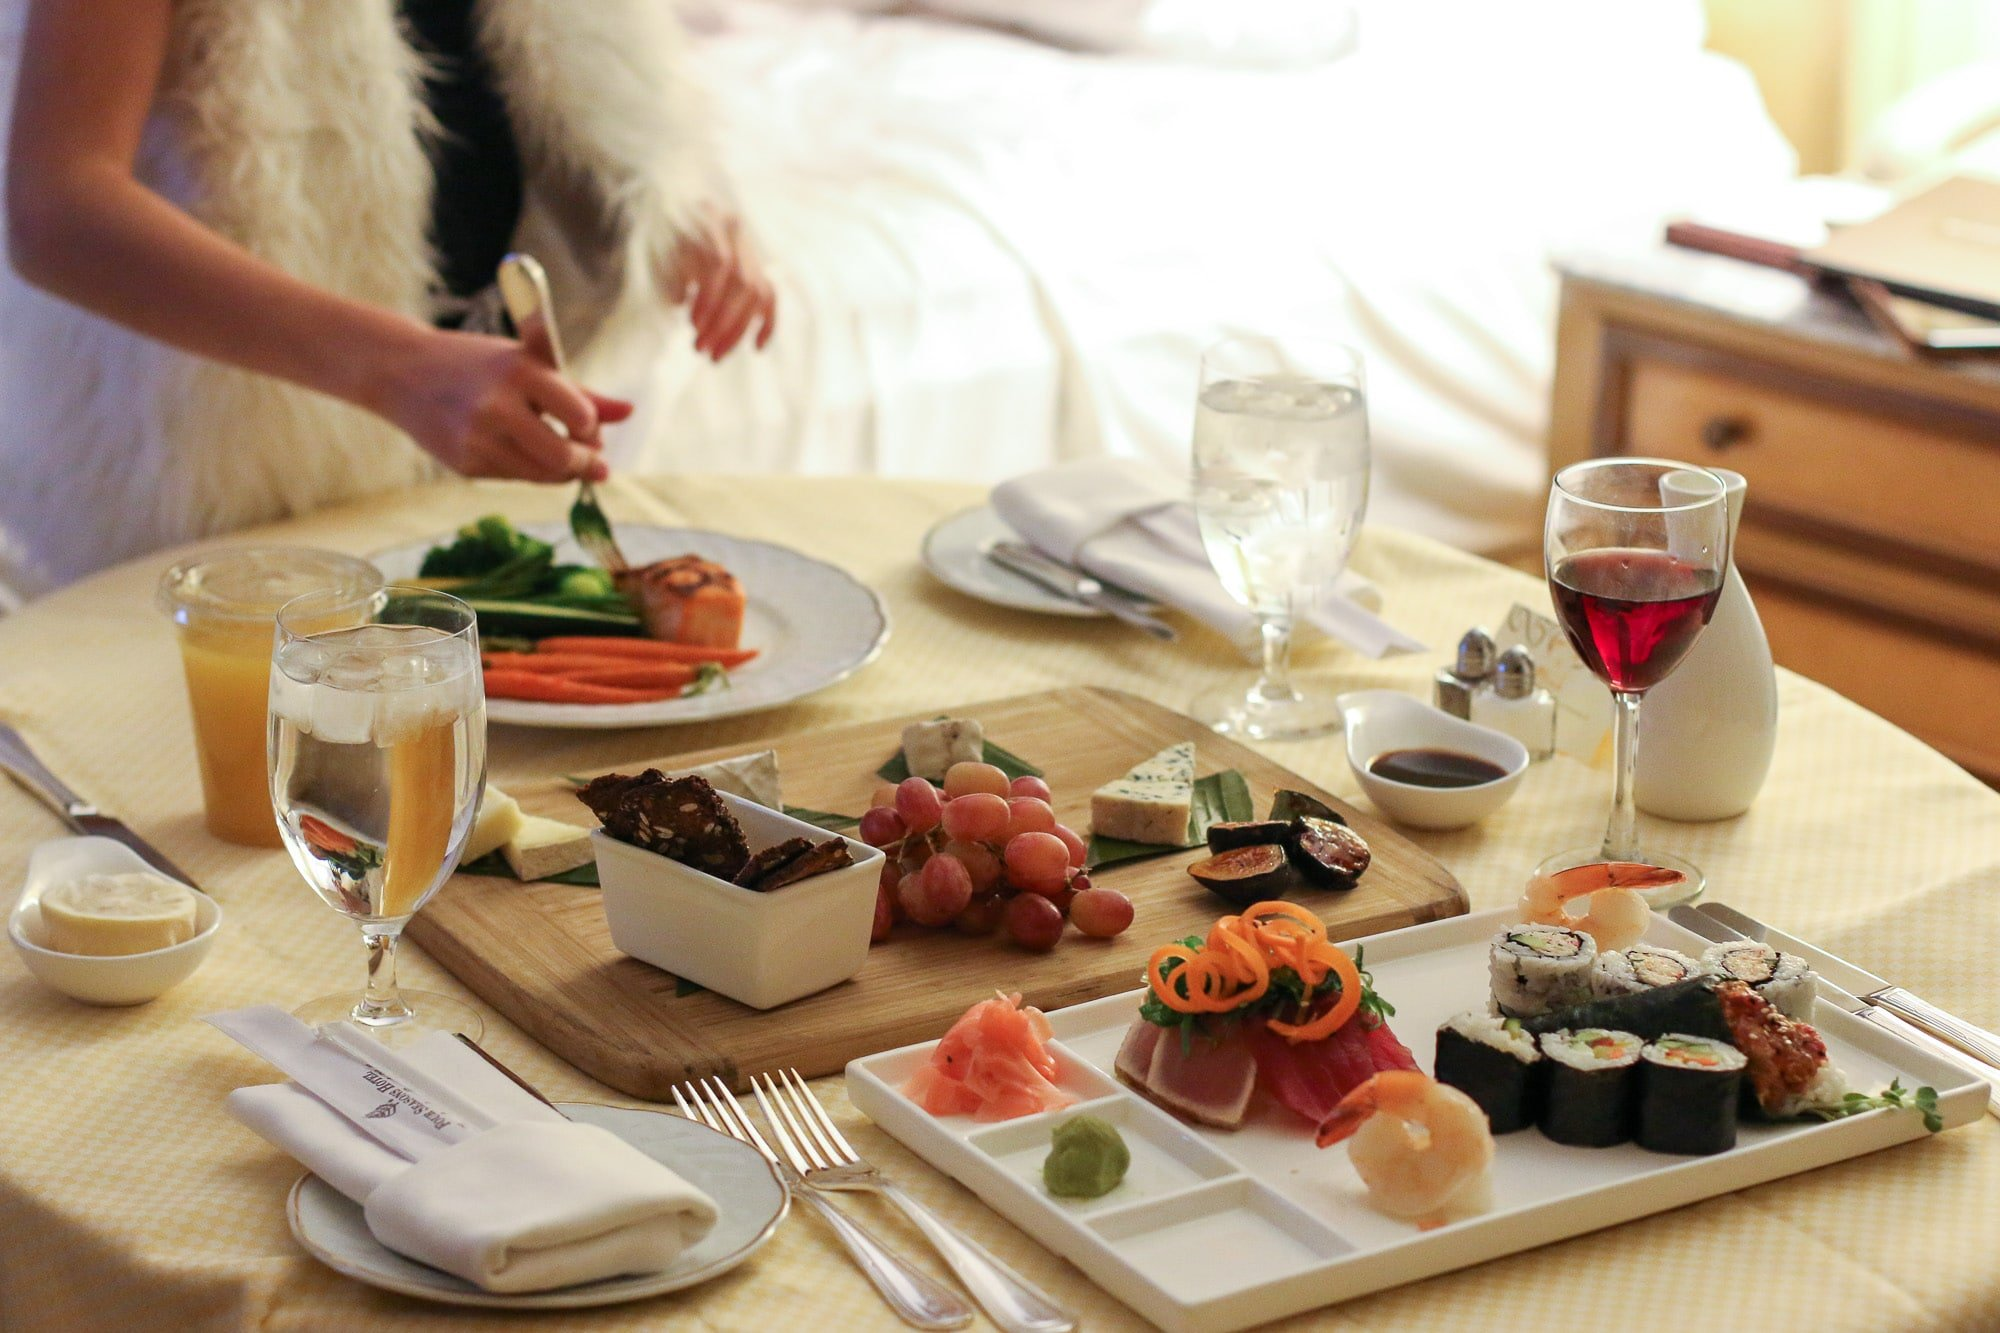 In-room dining tray with a cheese plate, sushi, seared ahi and more on top.